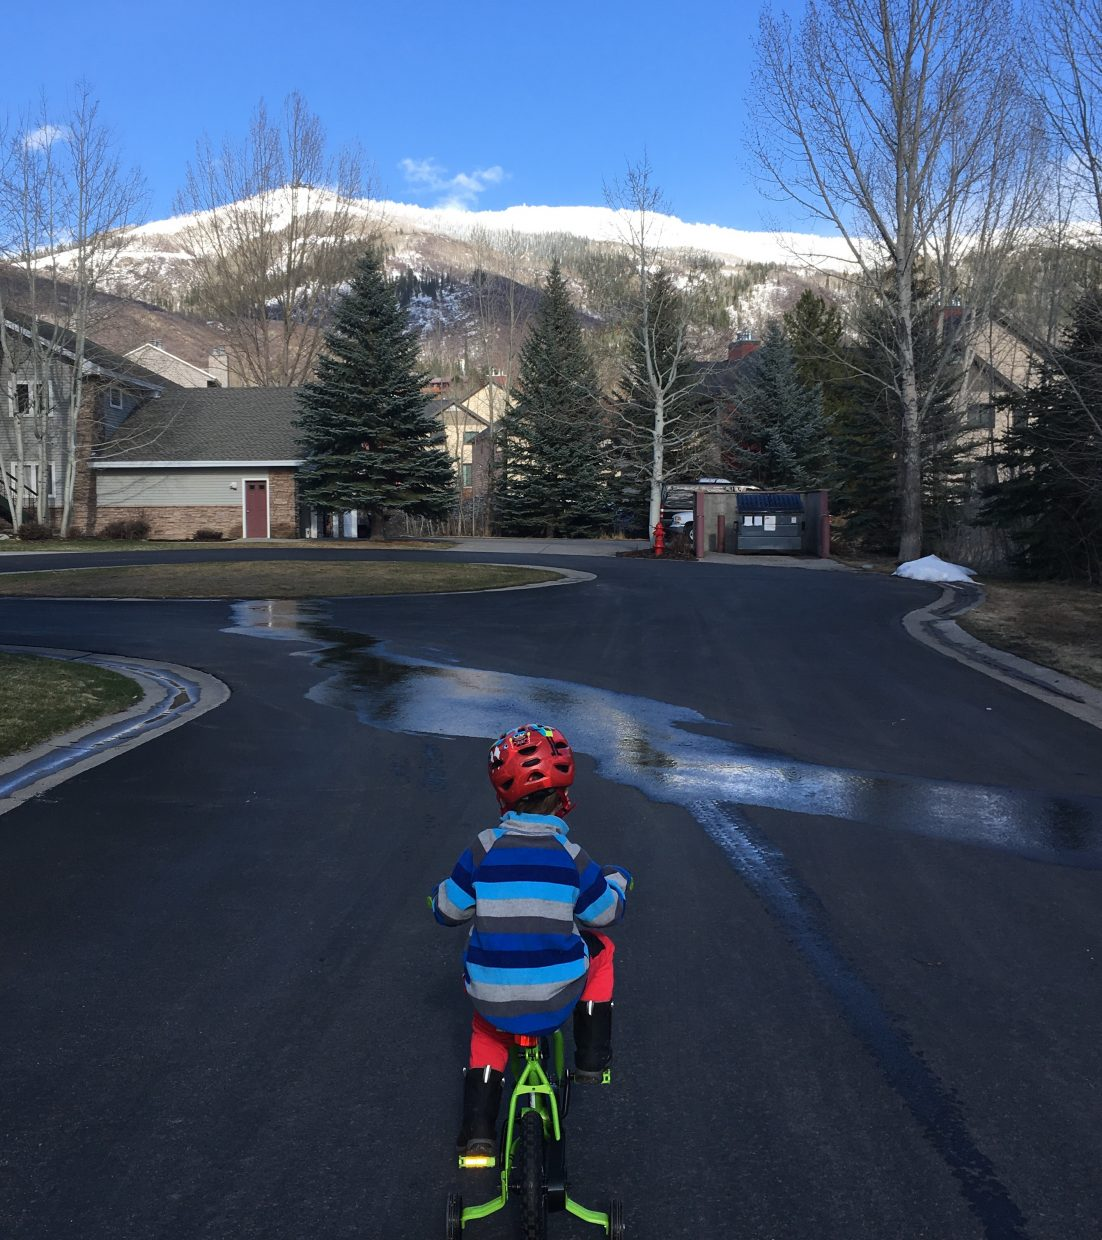 A little boy rides his bike as down in the valley shows signs of springs while the mountain holds onto winter.